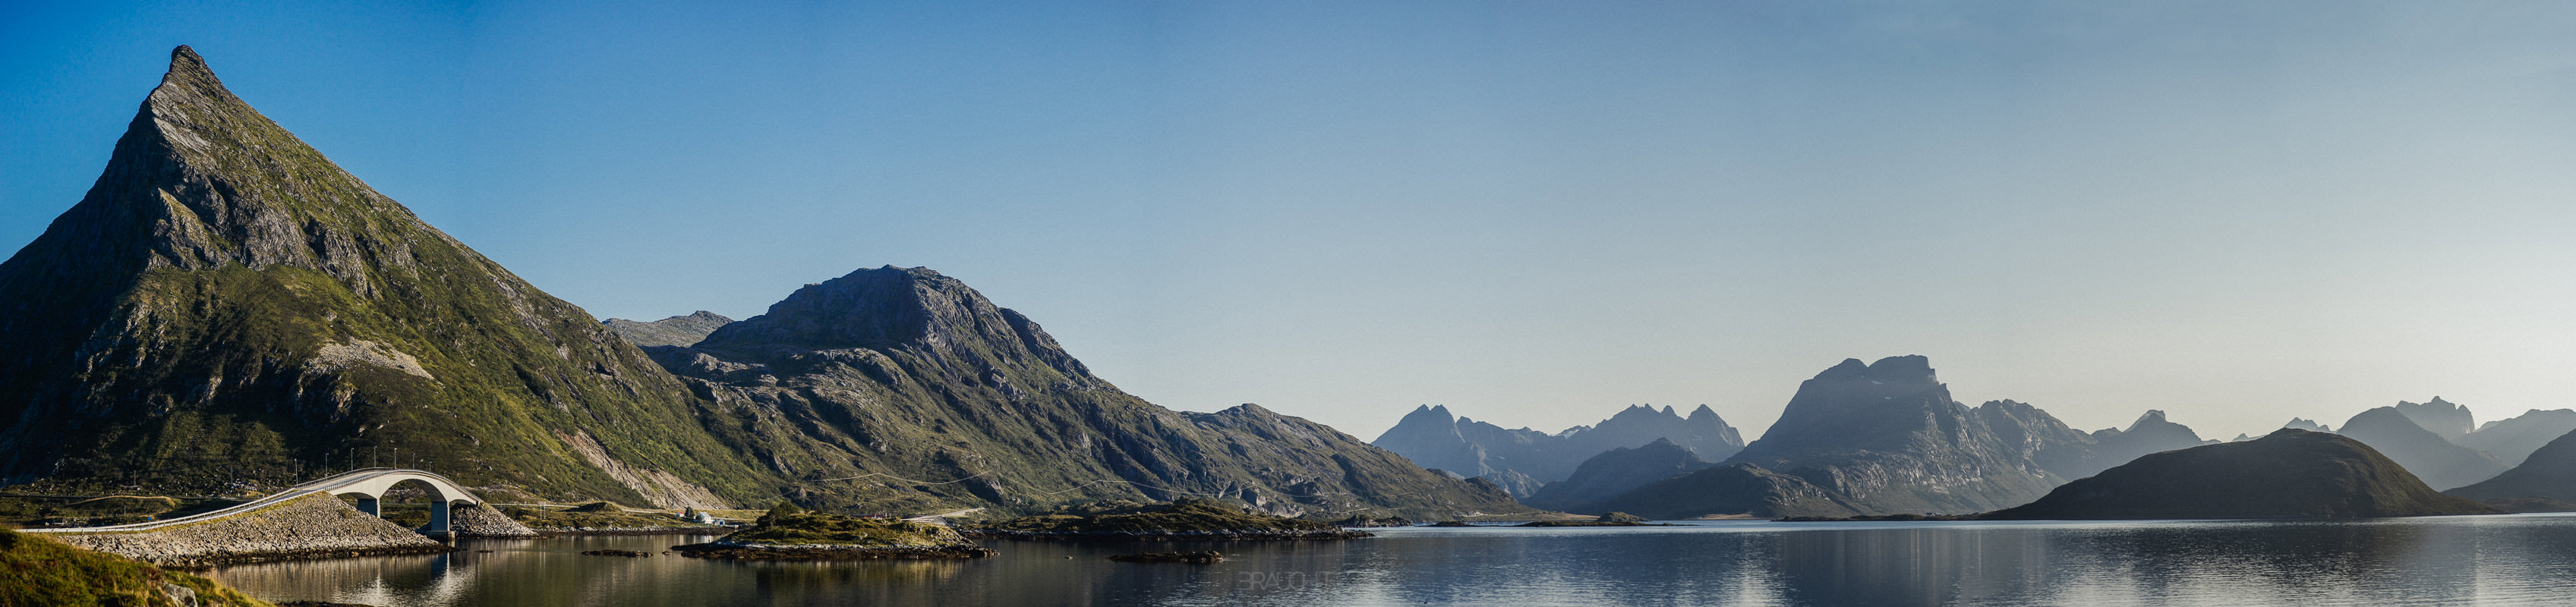 norway-lofoten-reine-roadtrip-26